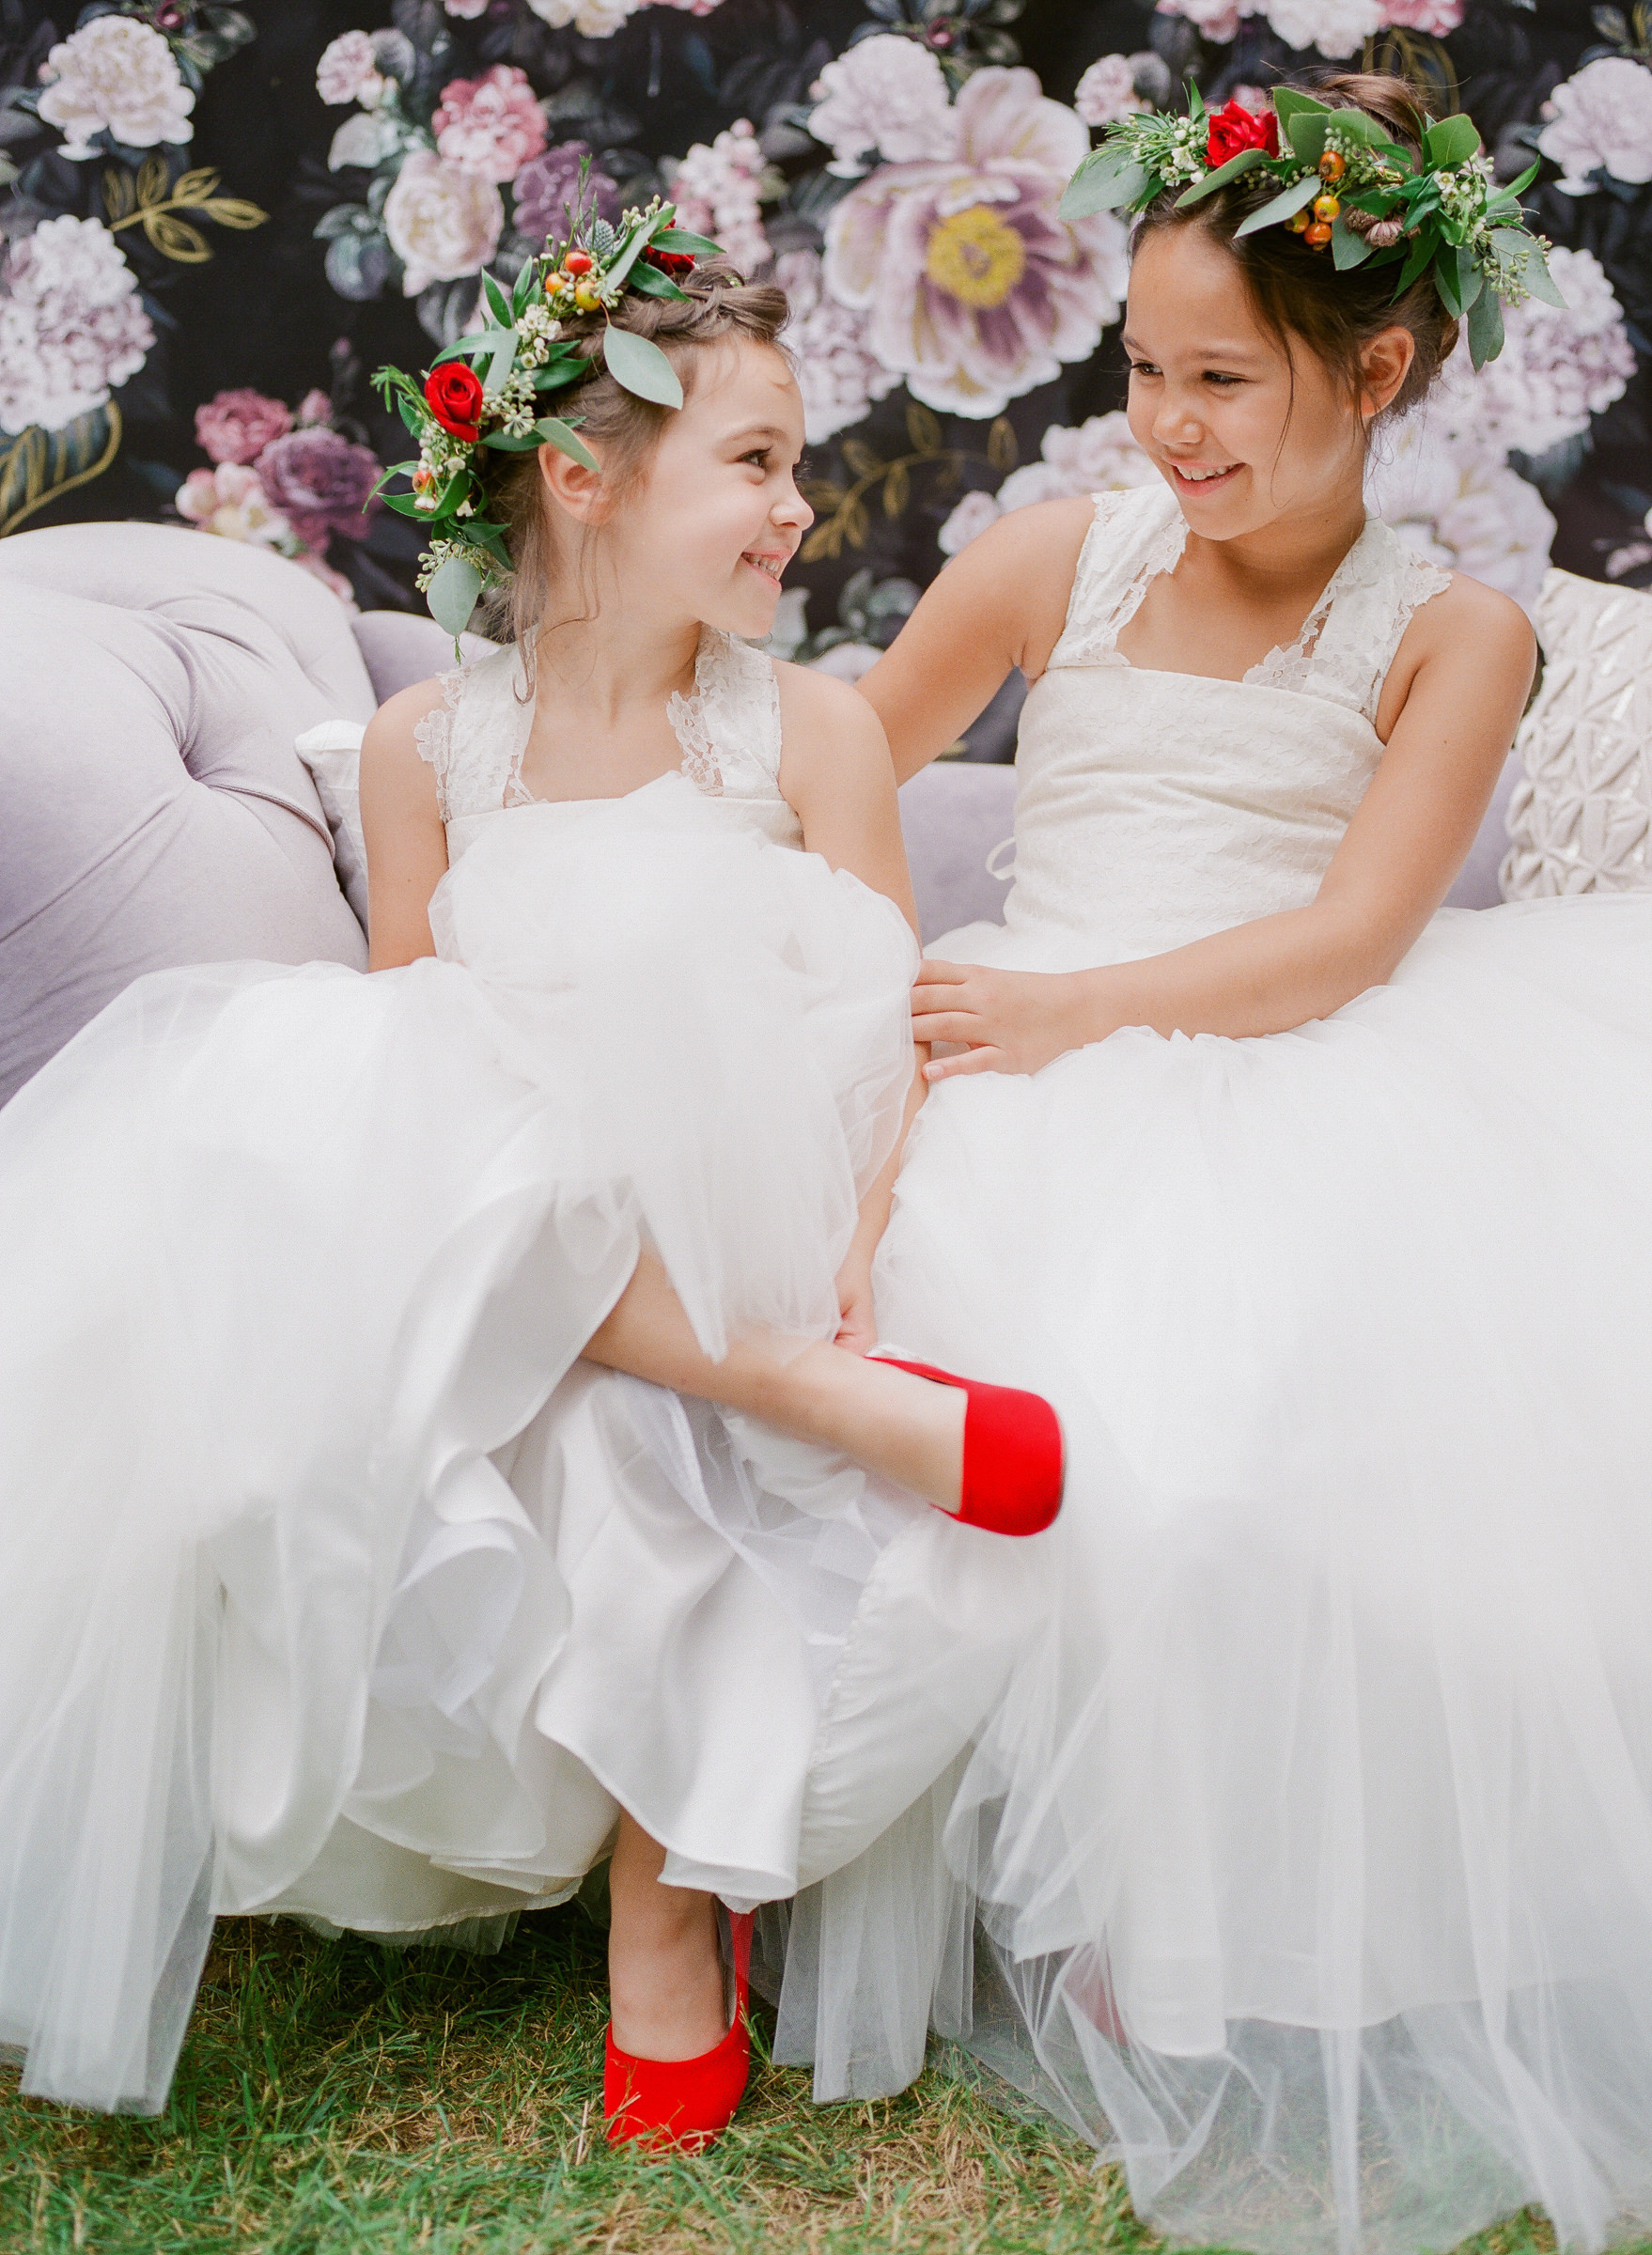 Kids in lace dress and floral crown and red shoes - photo by Corbin Gurkin